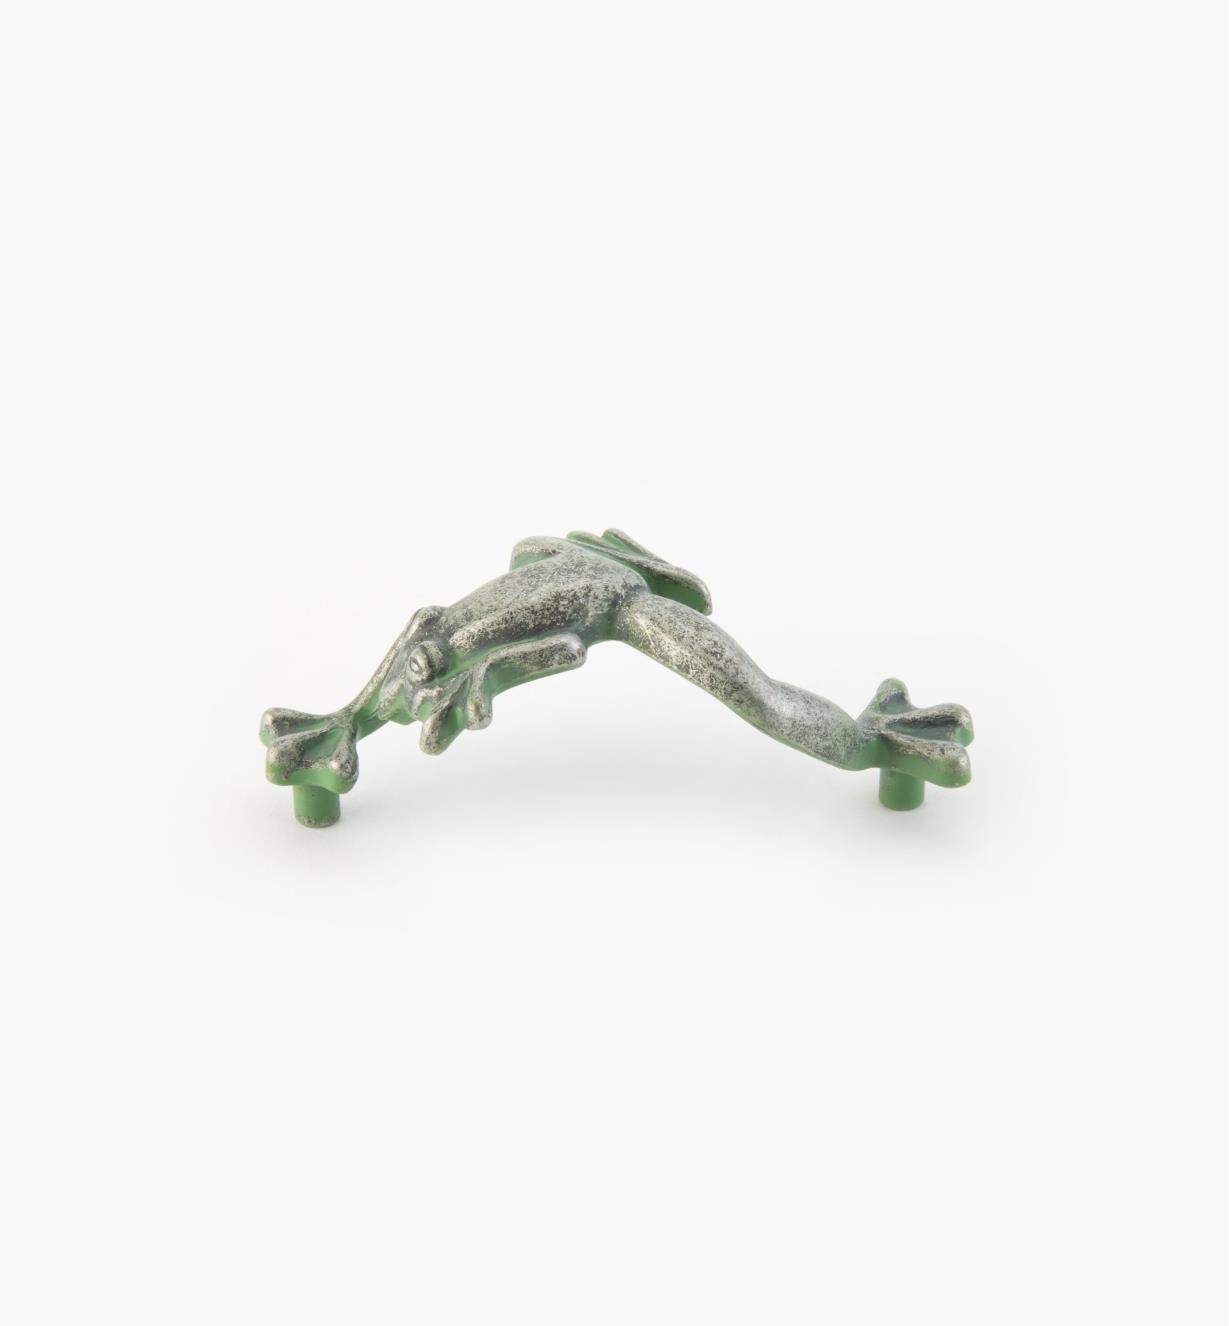 "03W2817 - Whimsical 3 1/2"" x 1 1/2"" Verde Gris Frog Pull, each"